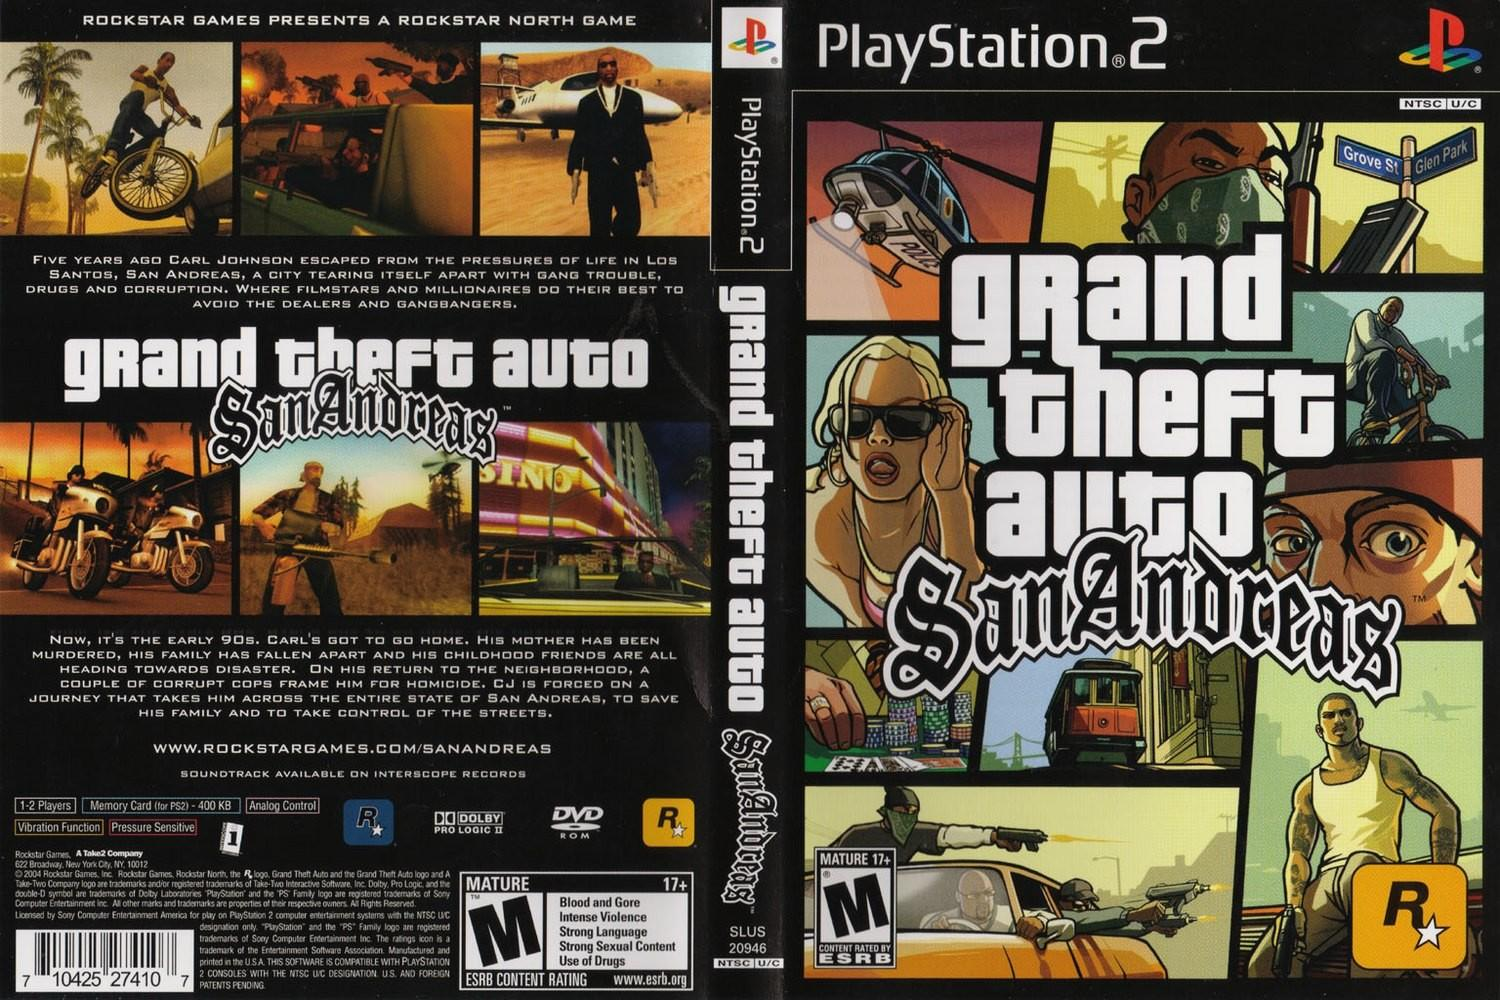 grand theft auto san andreas wallpaper hd download. Black Bedroom Furniture Sets. Home Design Ideas